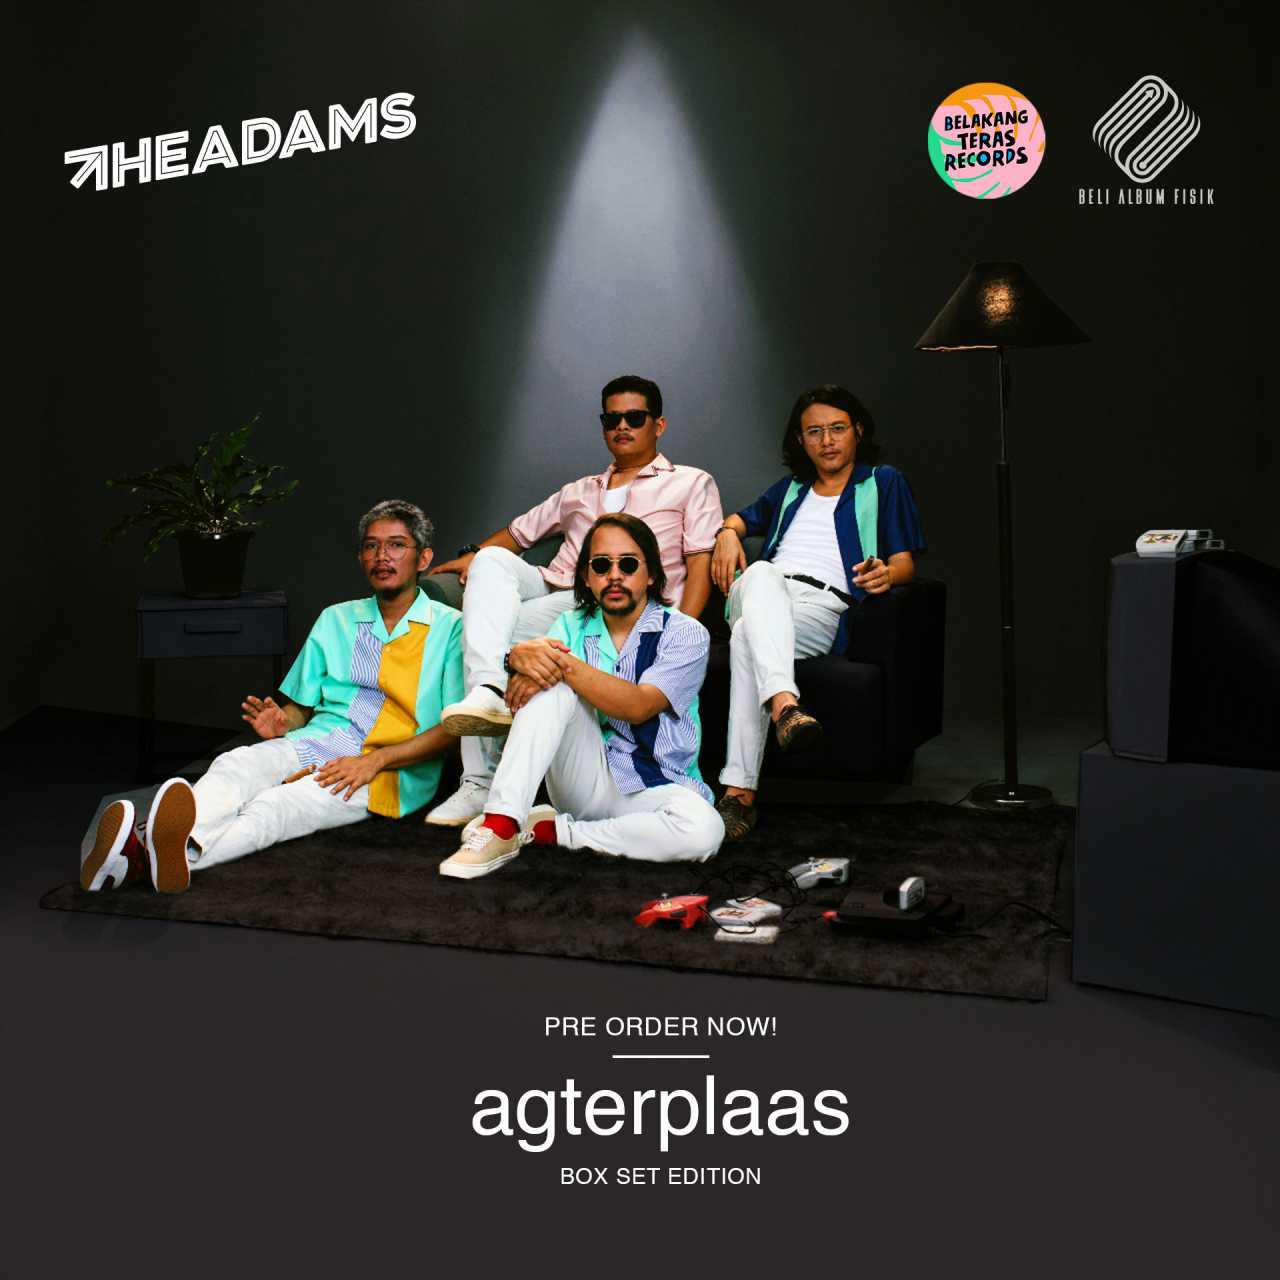 Agterplaas! The Adams Berani Main Fisik